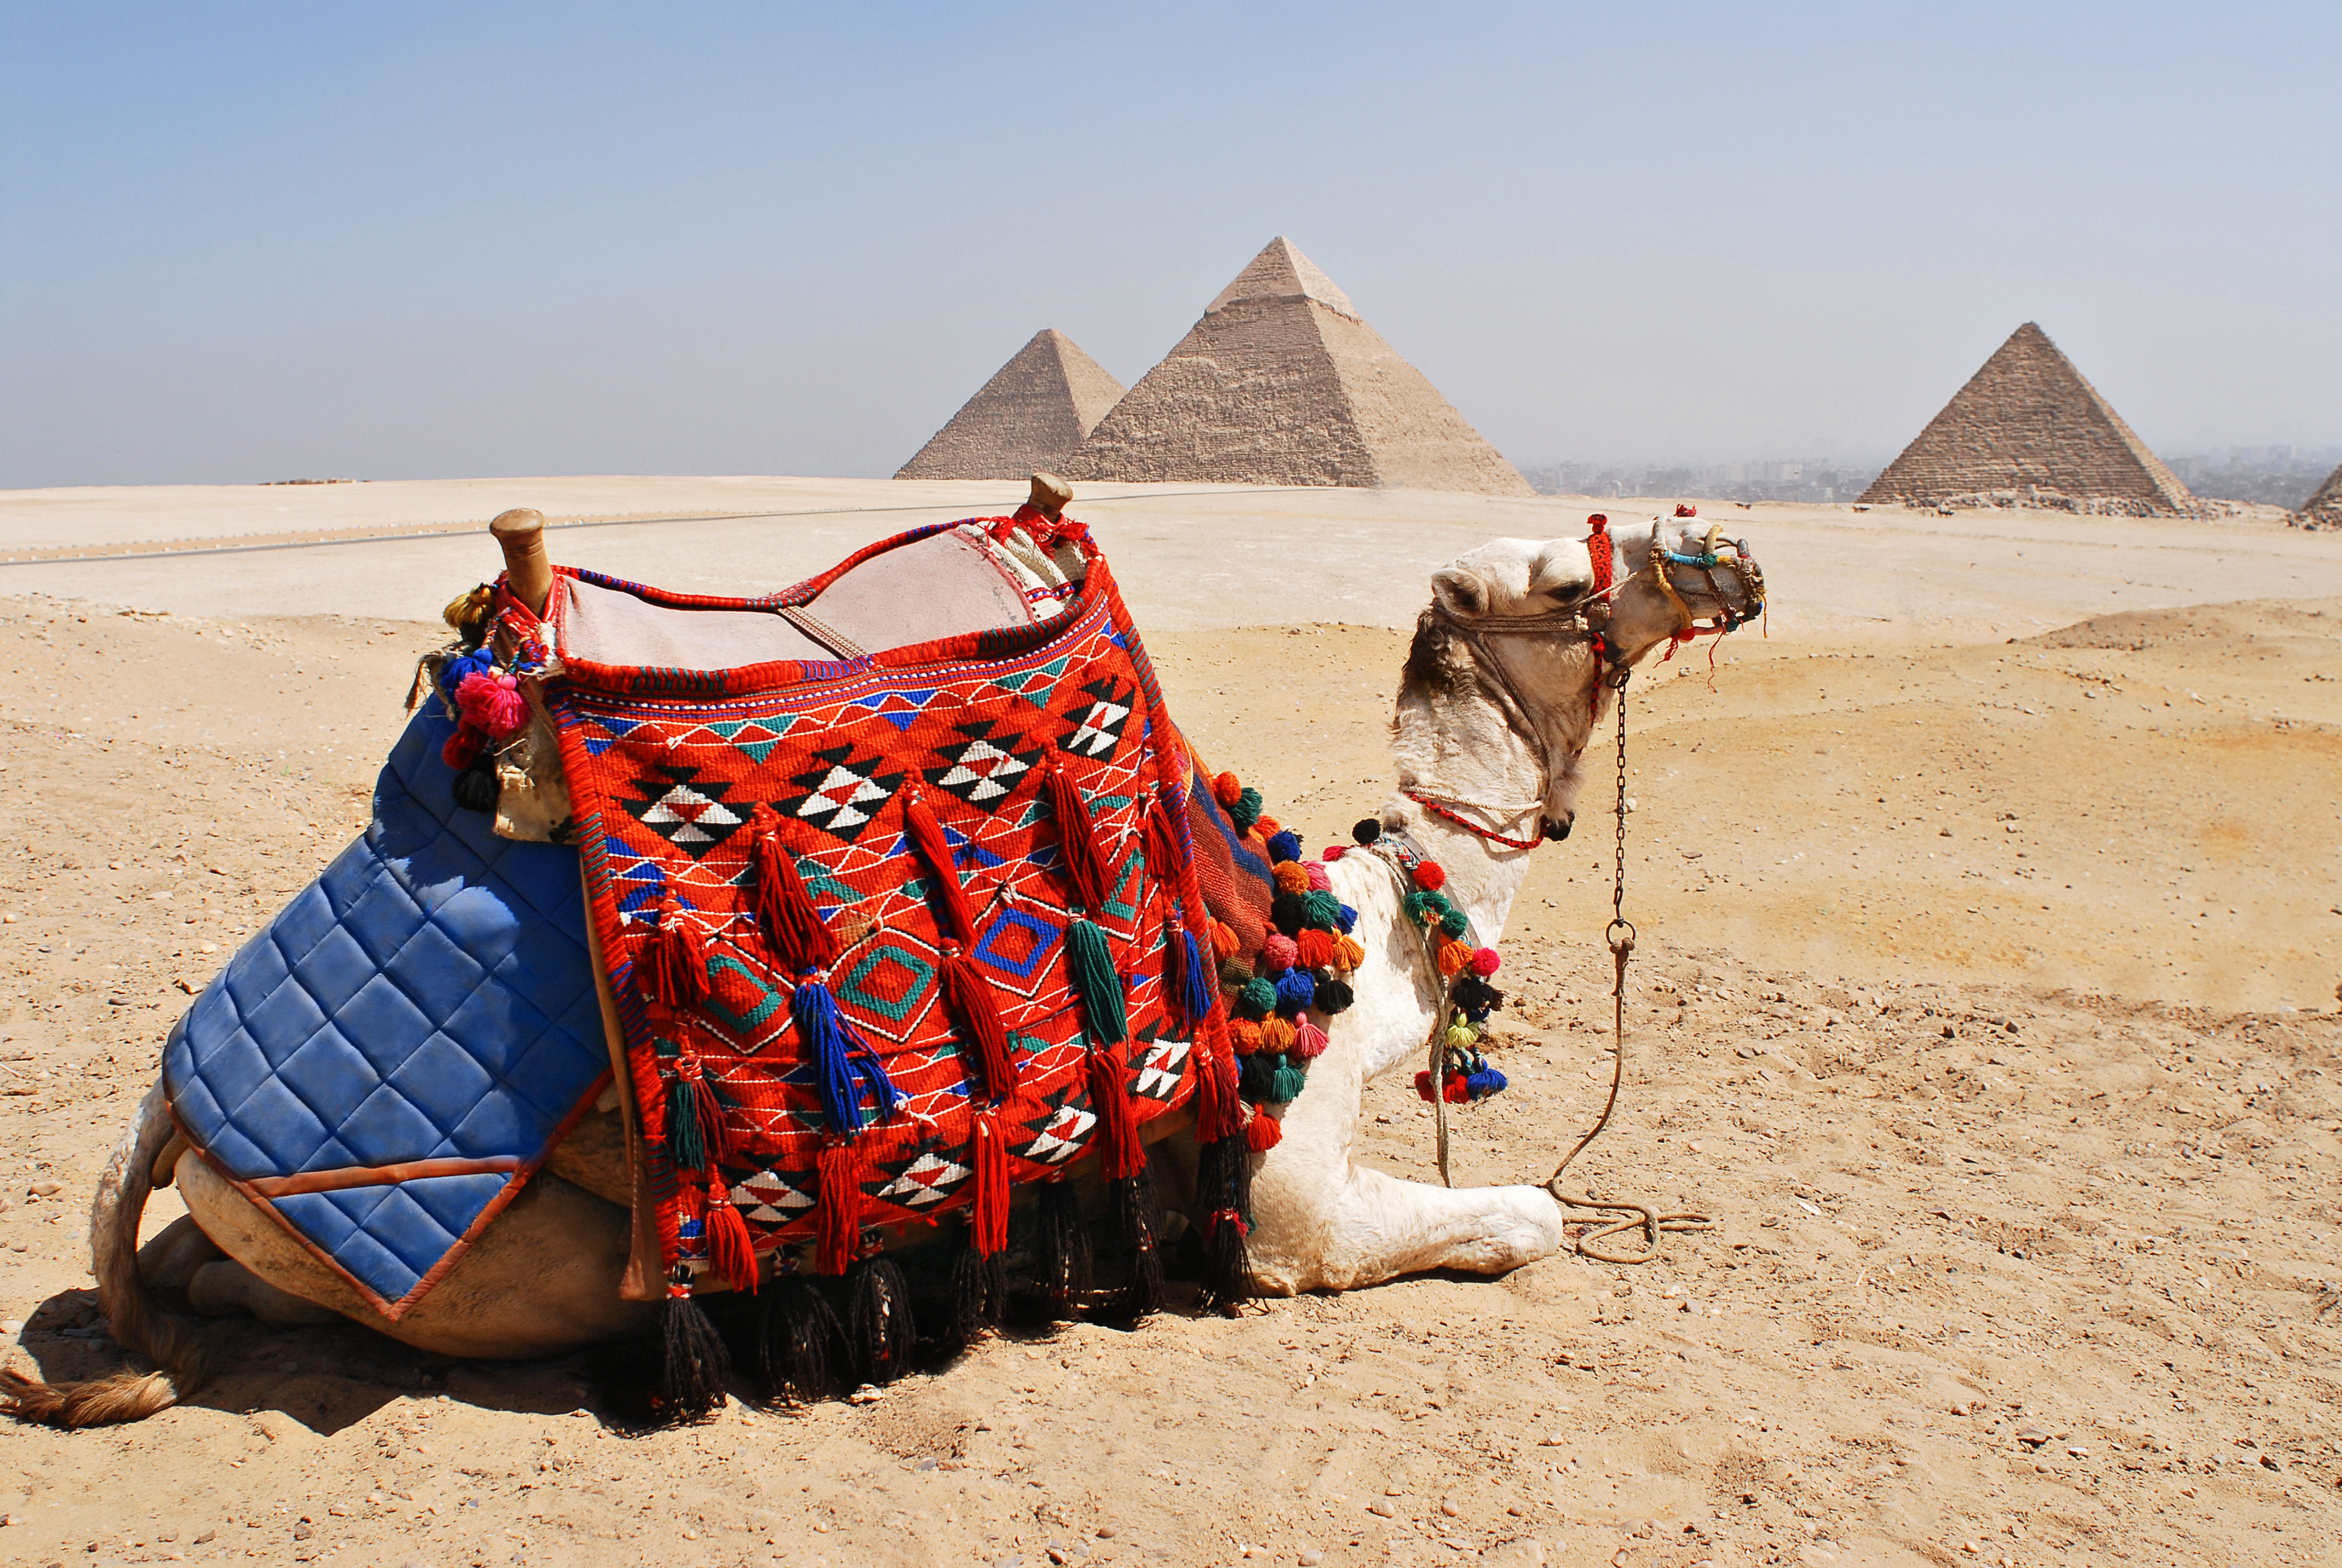 traditionally_decorated_camel_against_background_of_great_pyramid_of_giza_khufue28099s_pyramid_pyramid_of_khafre_pyramid_of_menkaure_left_to_right-_giza_cairo_egypt_north_africa